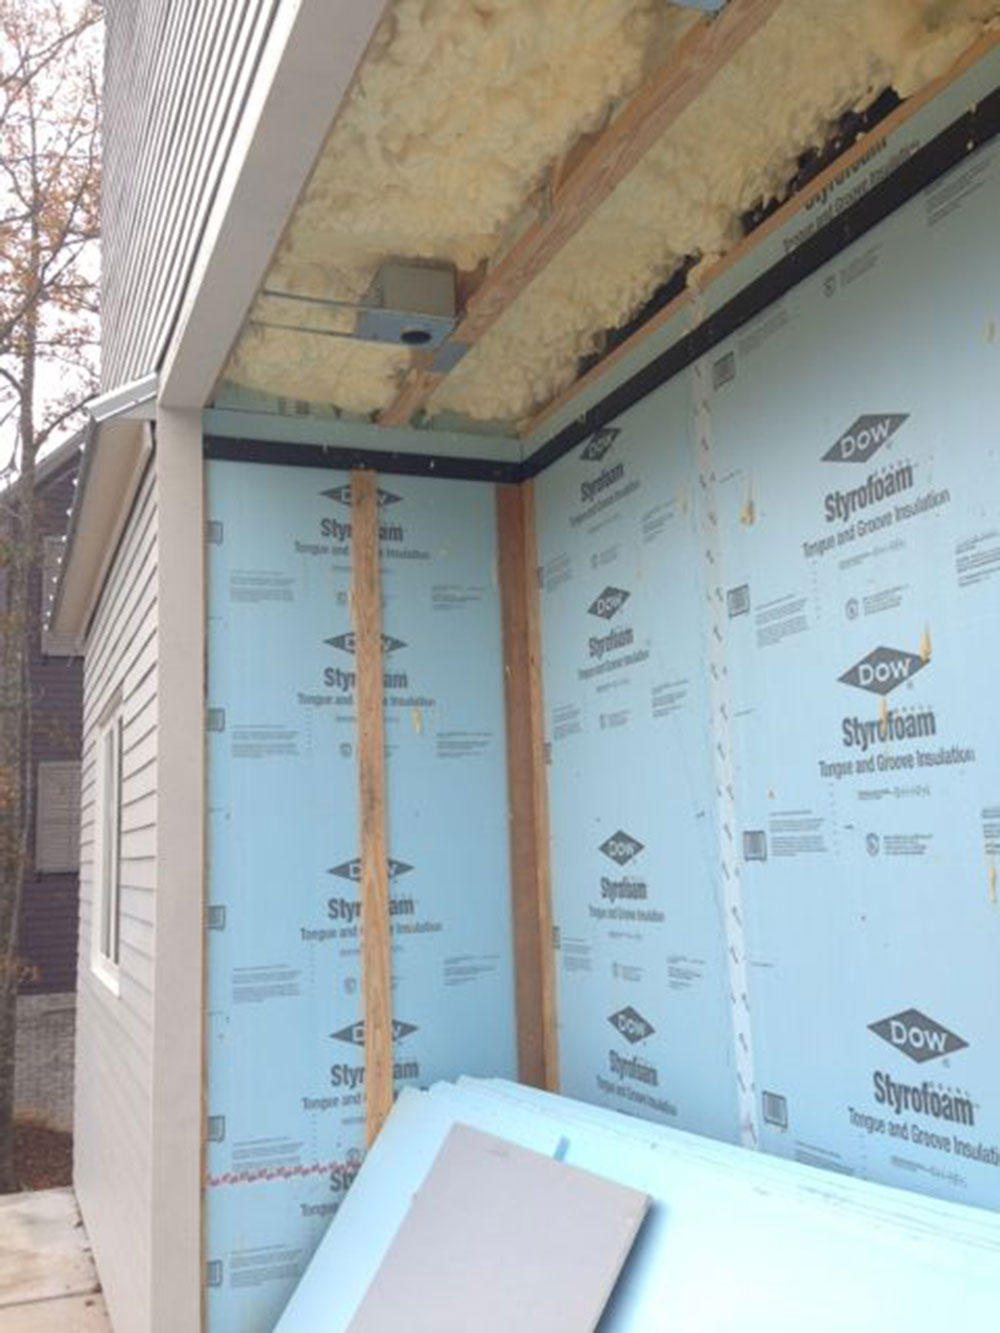 WRB sheathing How to install the house packaging correctly and do not mess it up